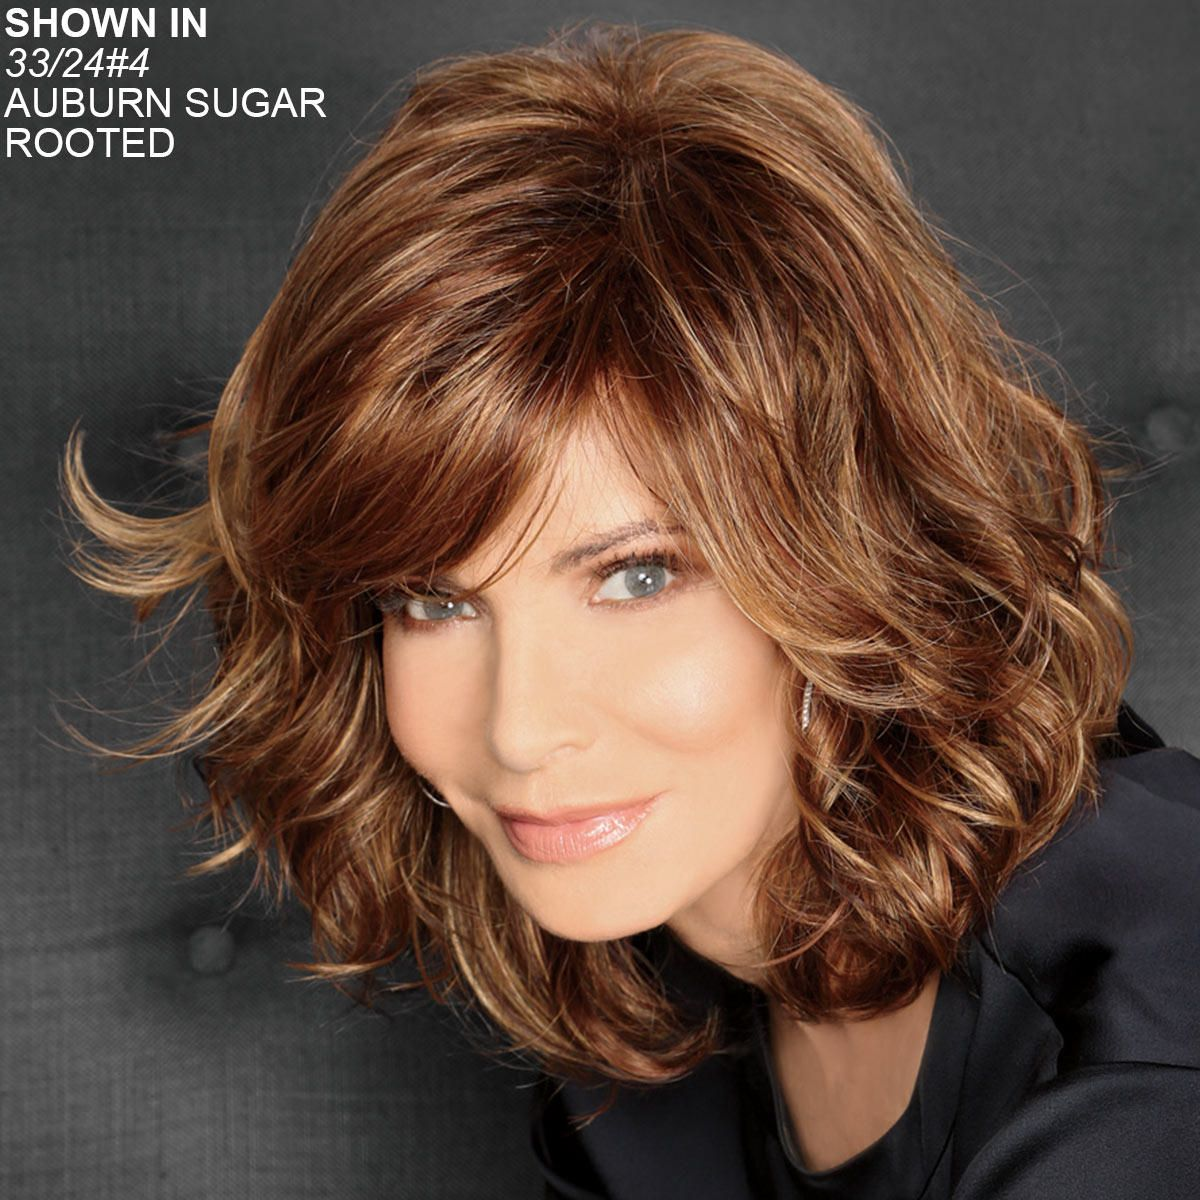 Sunset Wig By Jaclyn Smith Get Yours At Wig Com Wig Com